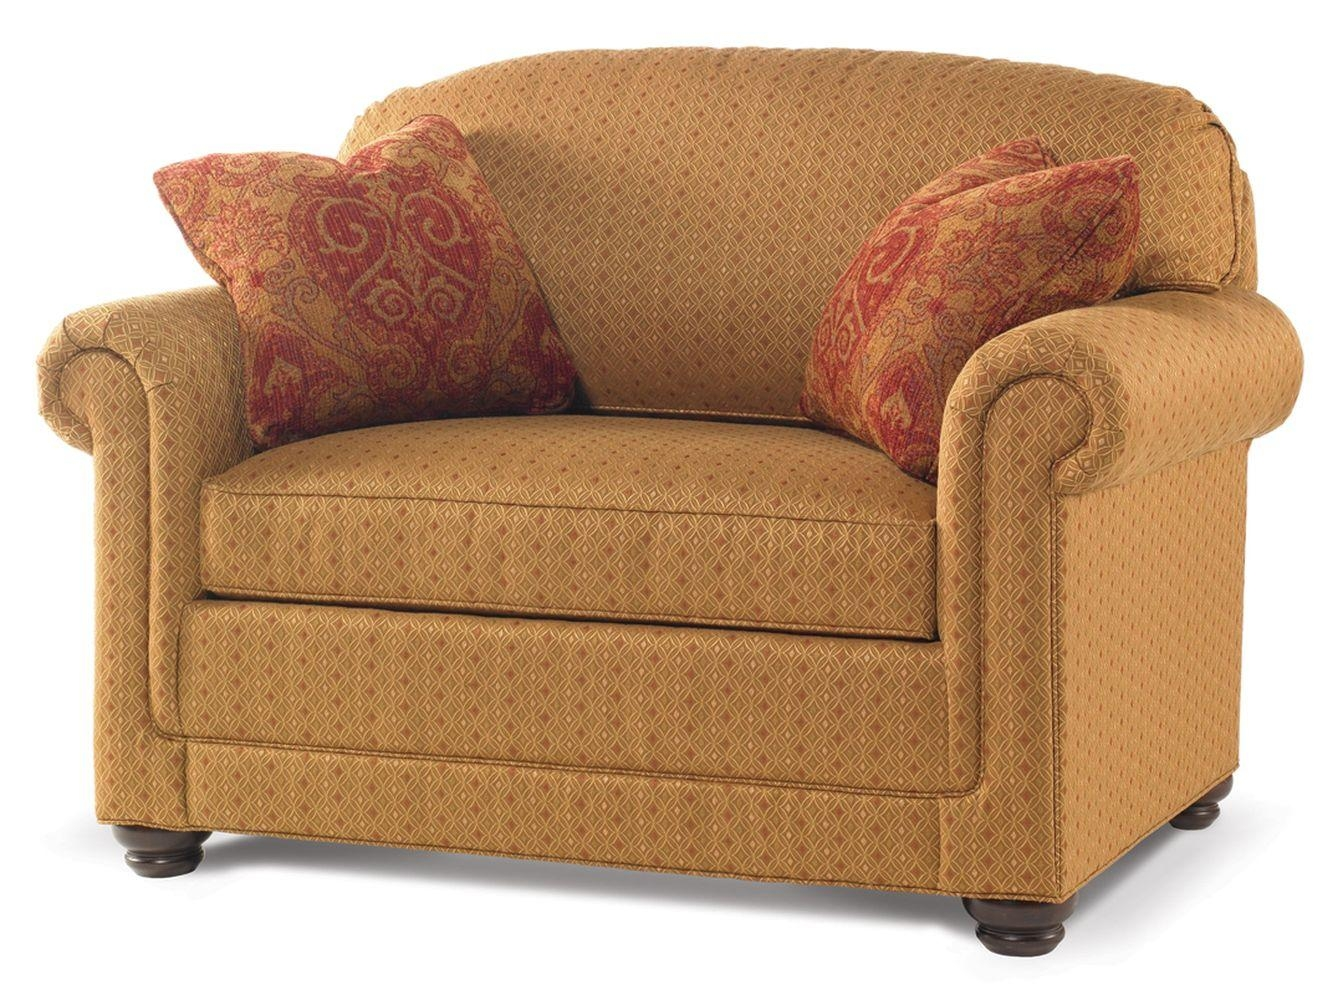 Small Twin Sleeper Sofas Chairs With Pillow And Storage Plus Brown Pertaining To Twin Sleeper Sofa Chairs (View 7 of 20)